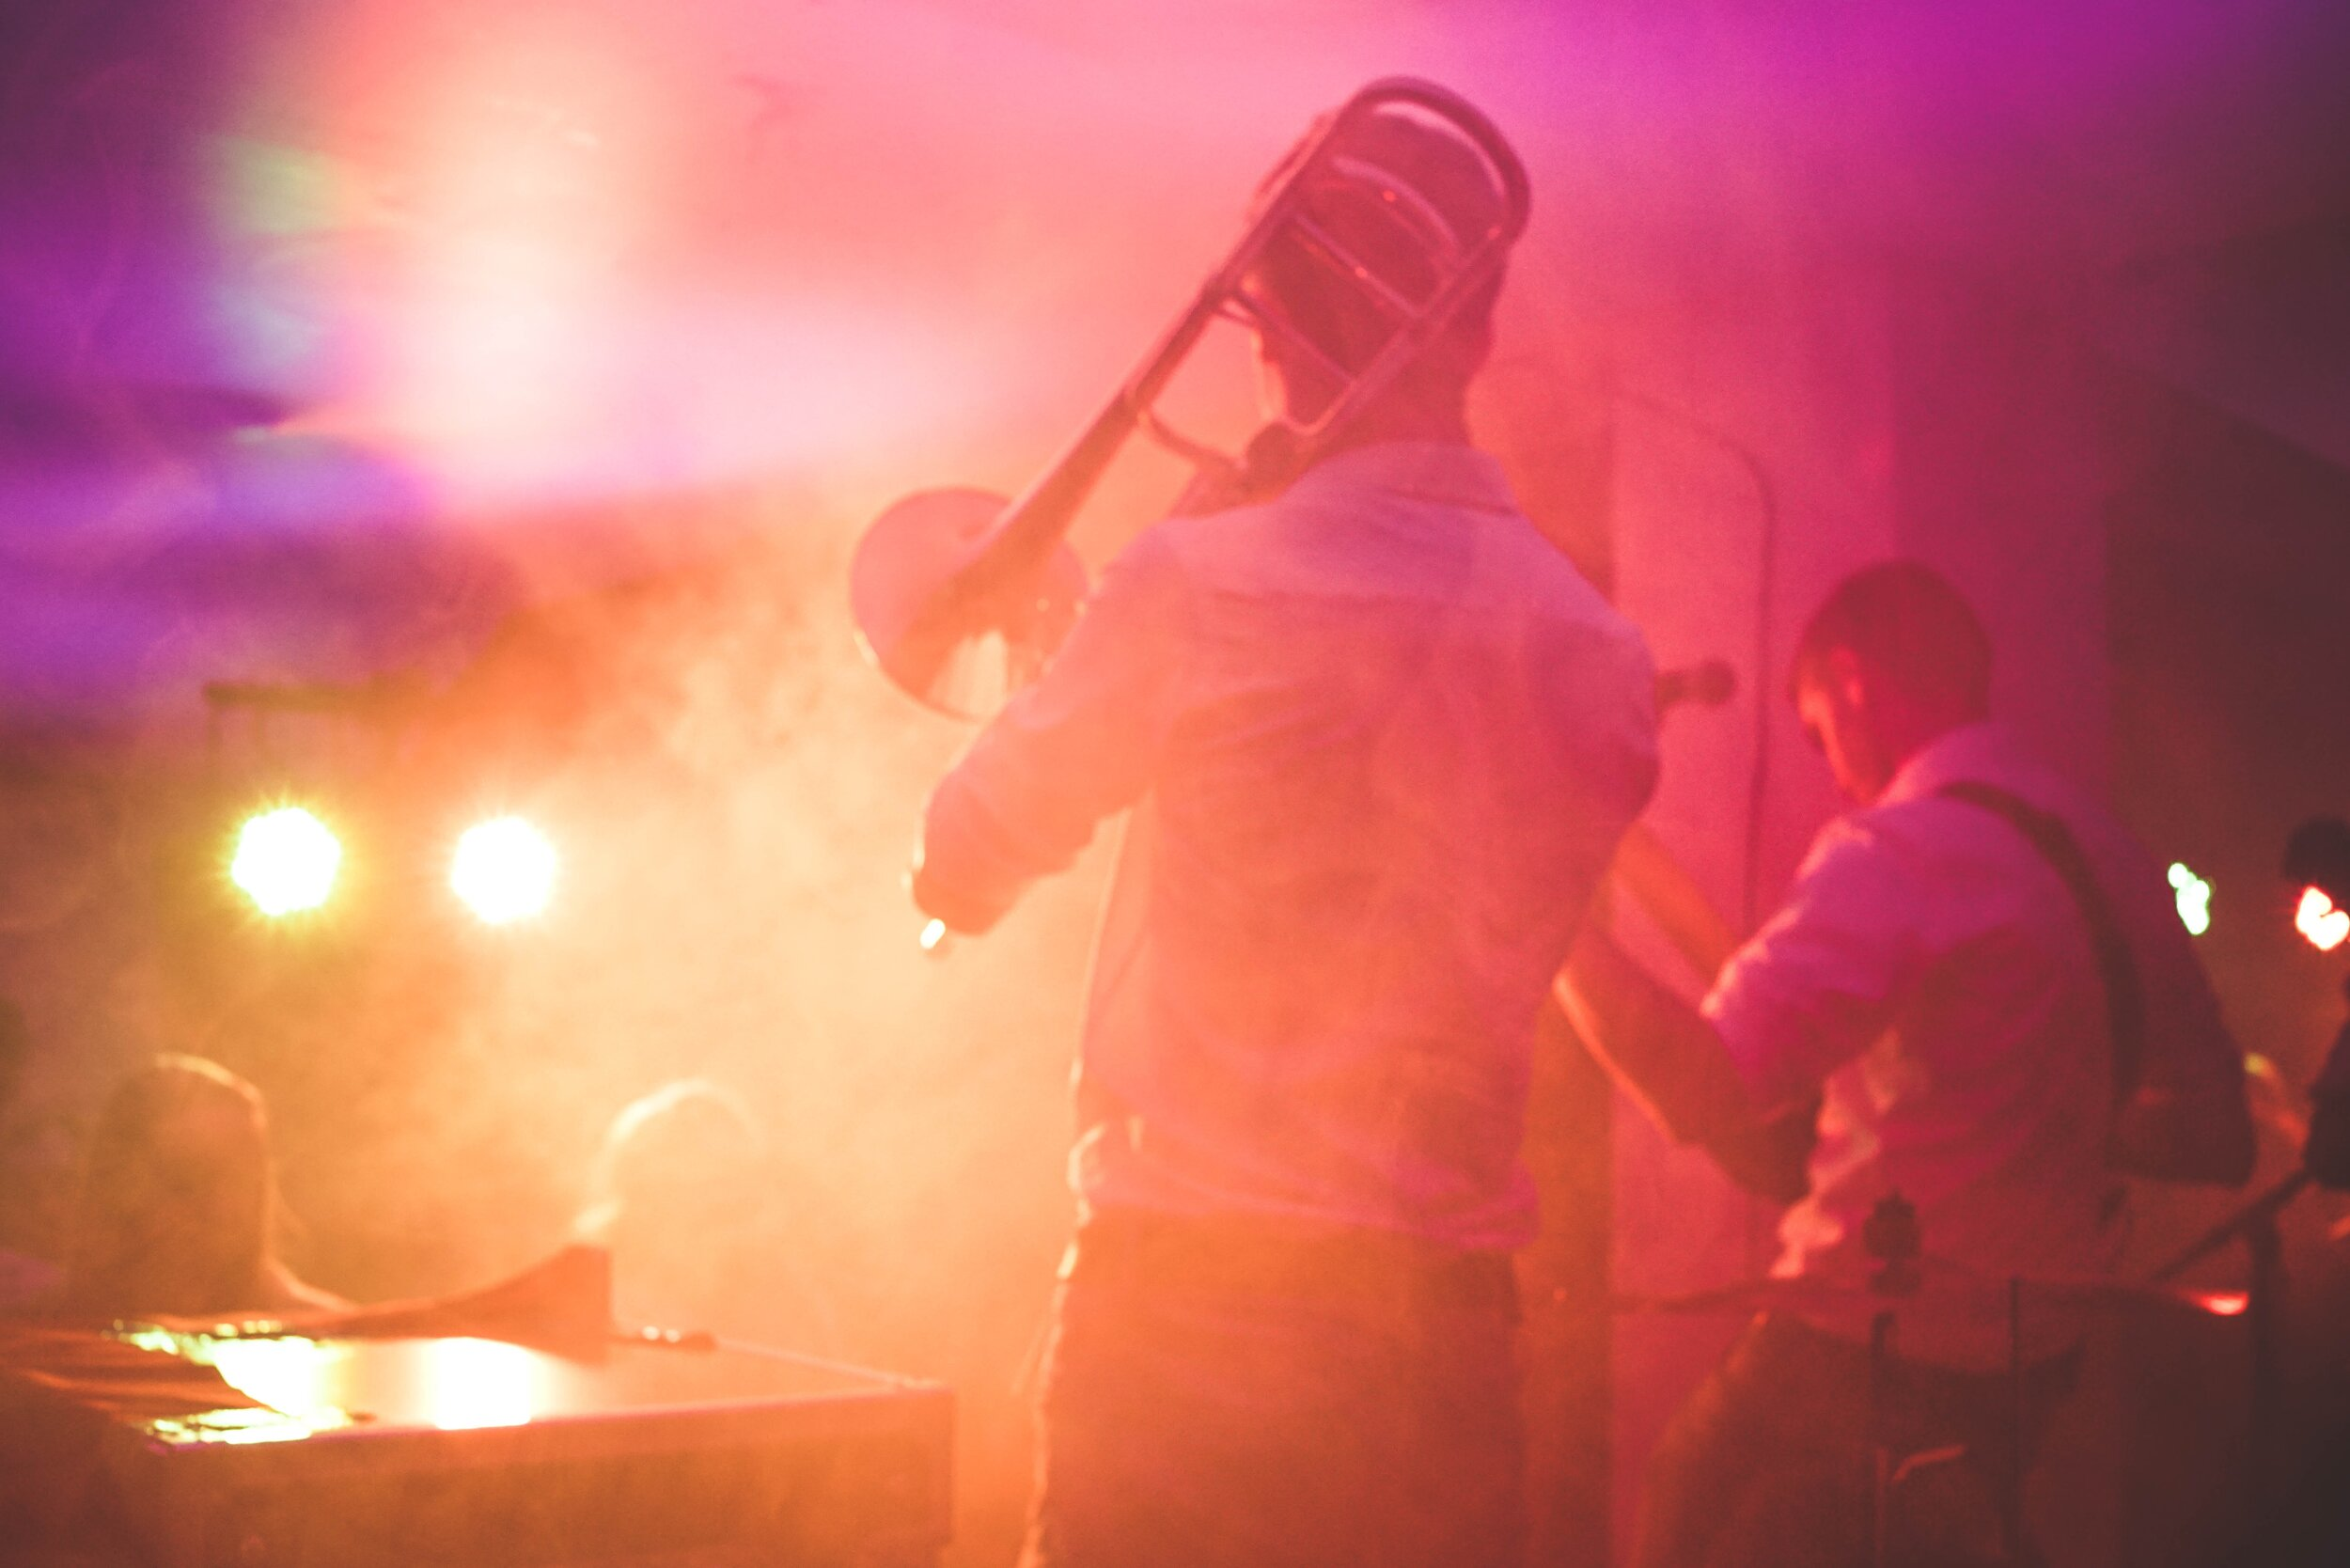 Premier Bands - Our bands specialize in wedding, social, corporate, and holiday events. We represent premier bands and entertainment in Denver and in the mountains. From bluegrass to folk, from Top 40 to cocktail hour, we can bring the new era of musical talent to your event.